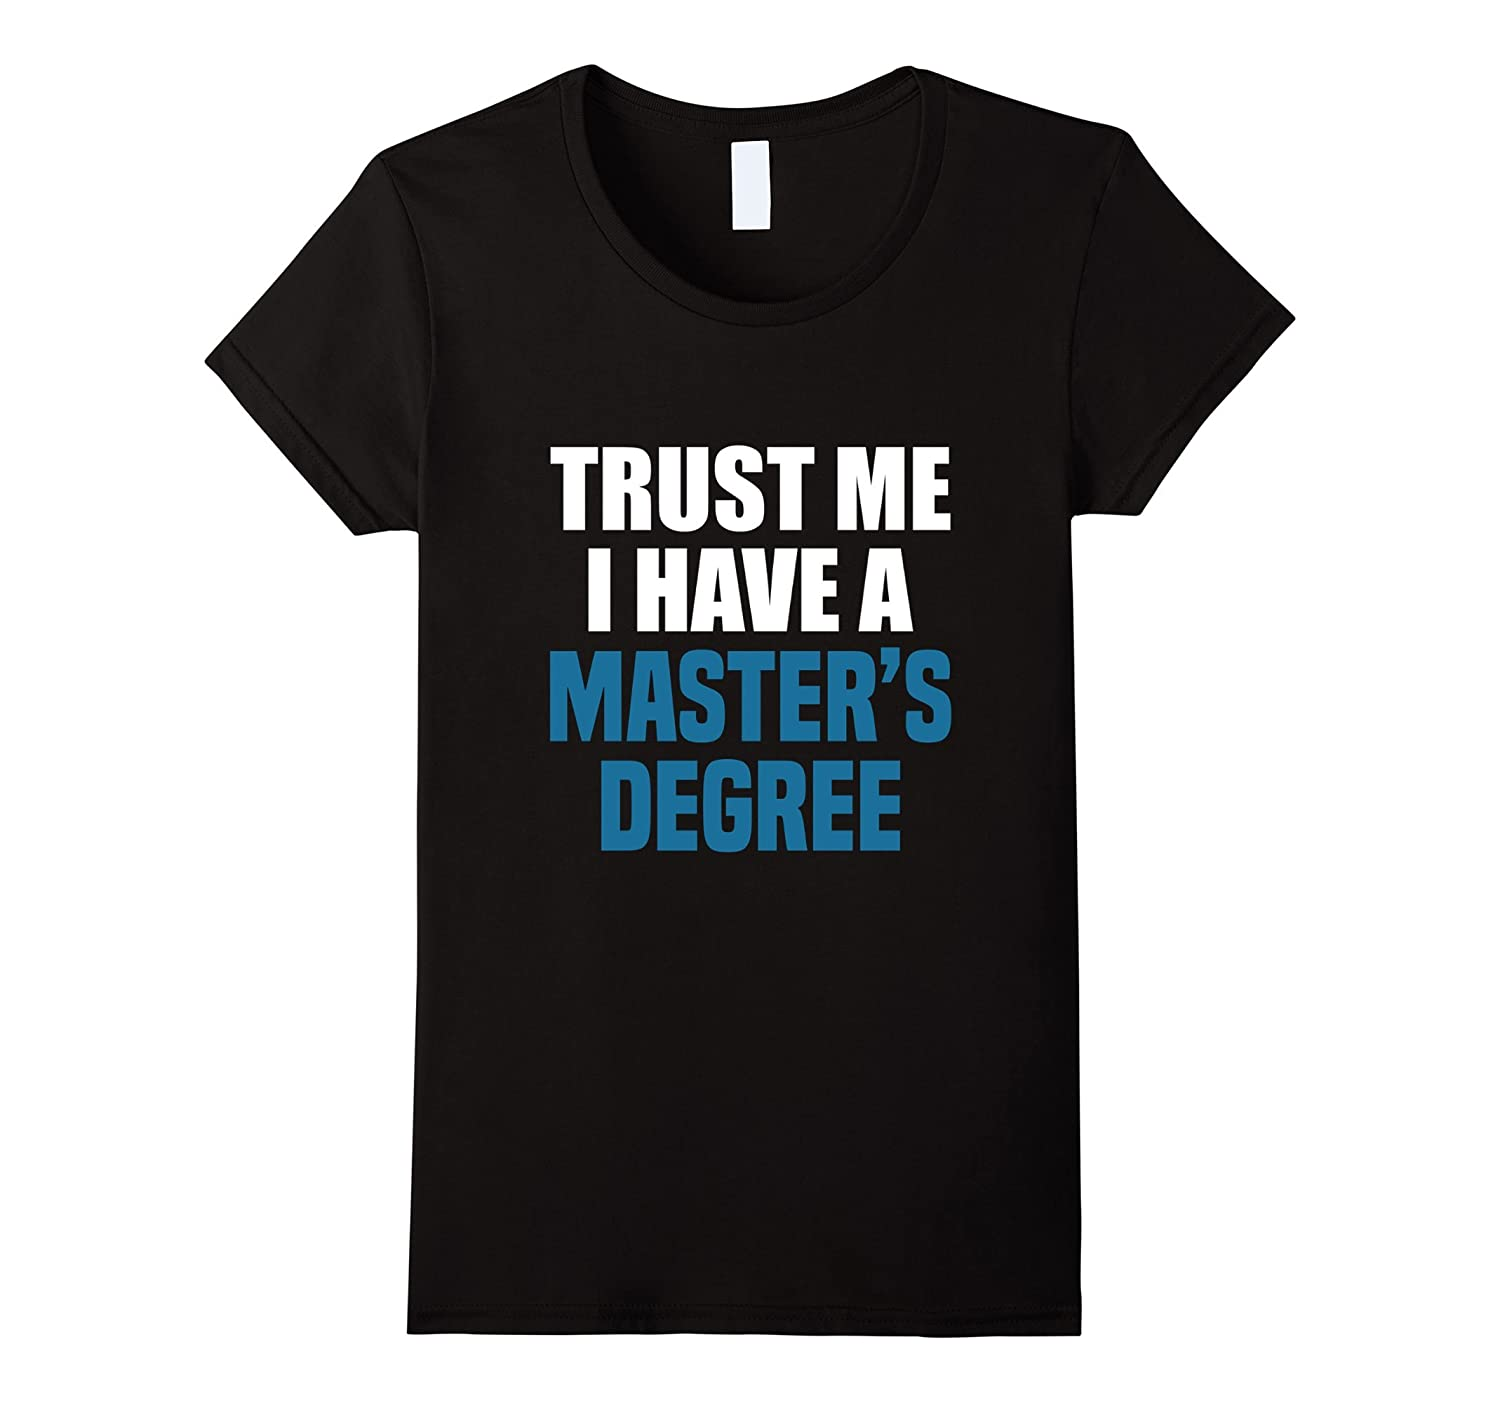 Trust Me I Have A Master's Degree T-Shirt